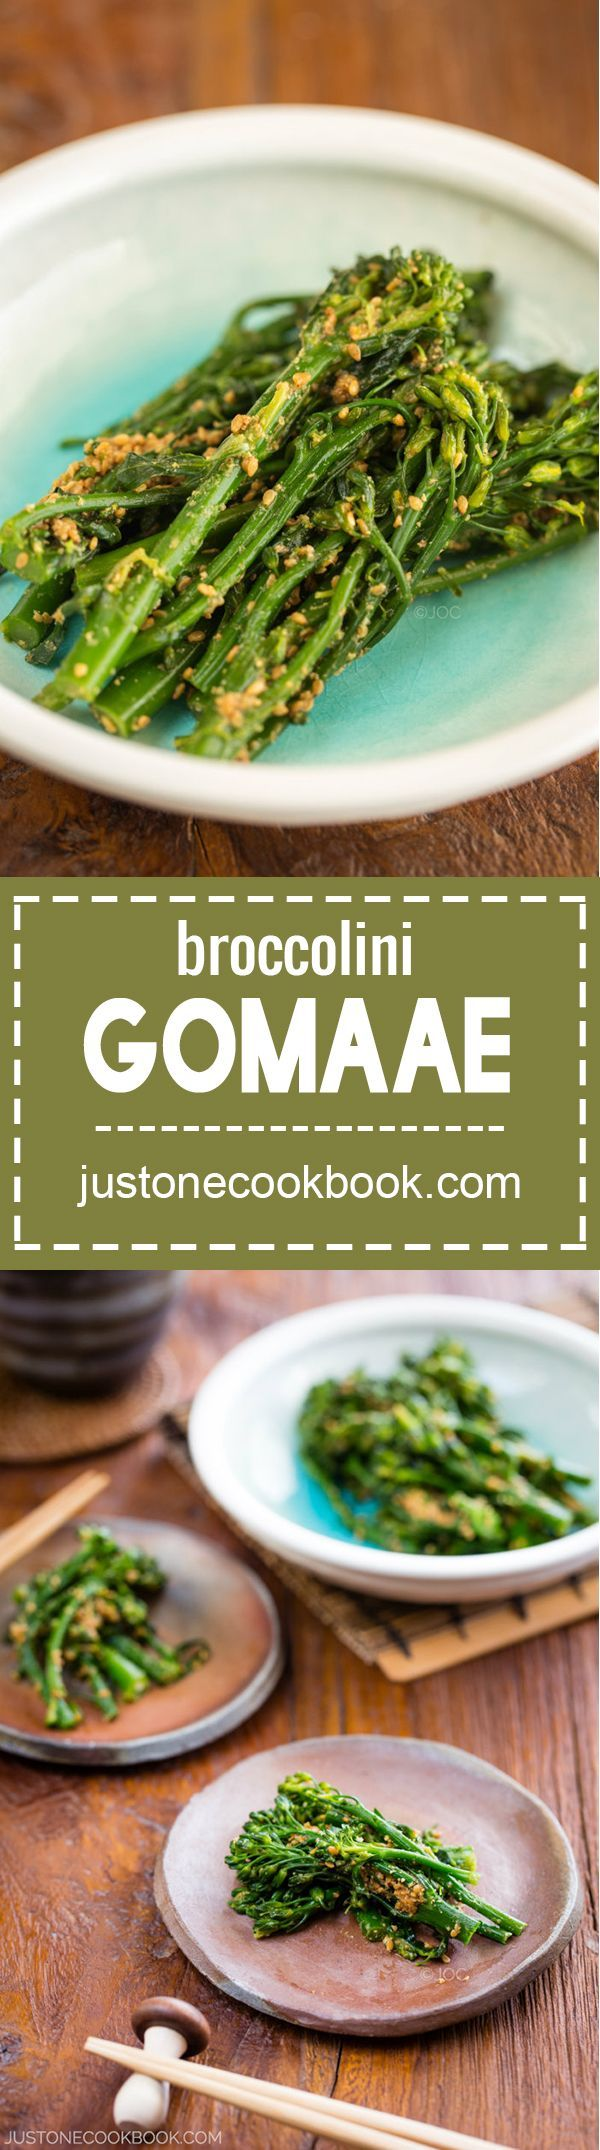 Broccolini Gomaae (Broccolini with Sesame Dressing) | Easy Japanese Recipes at